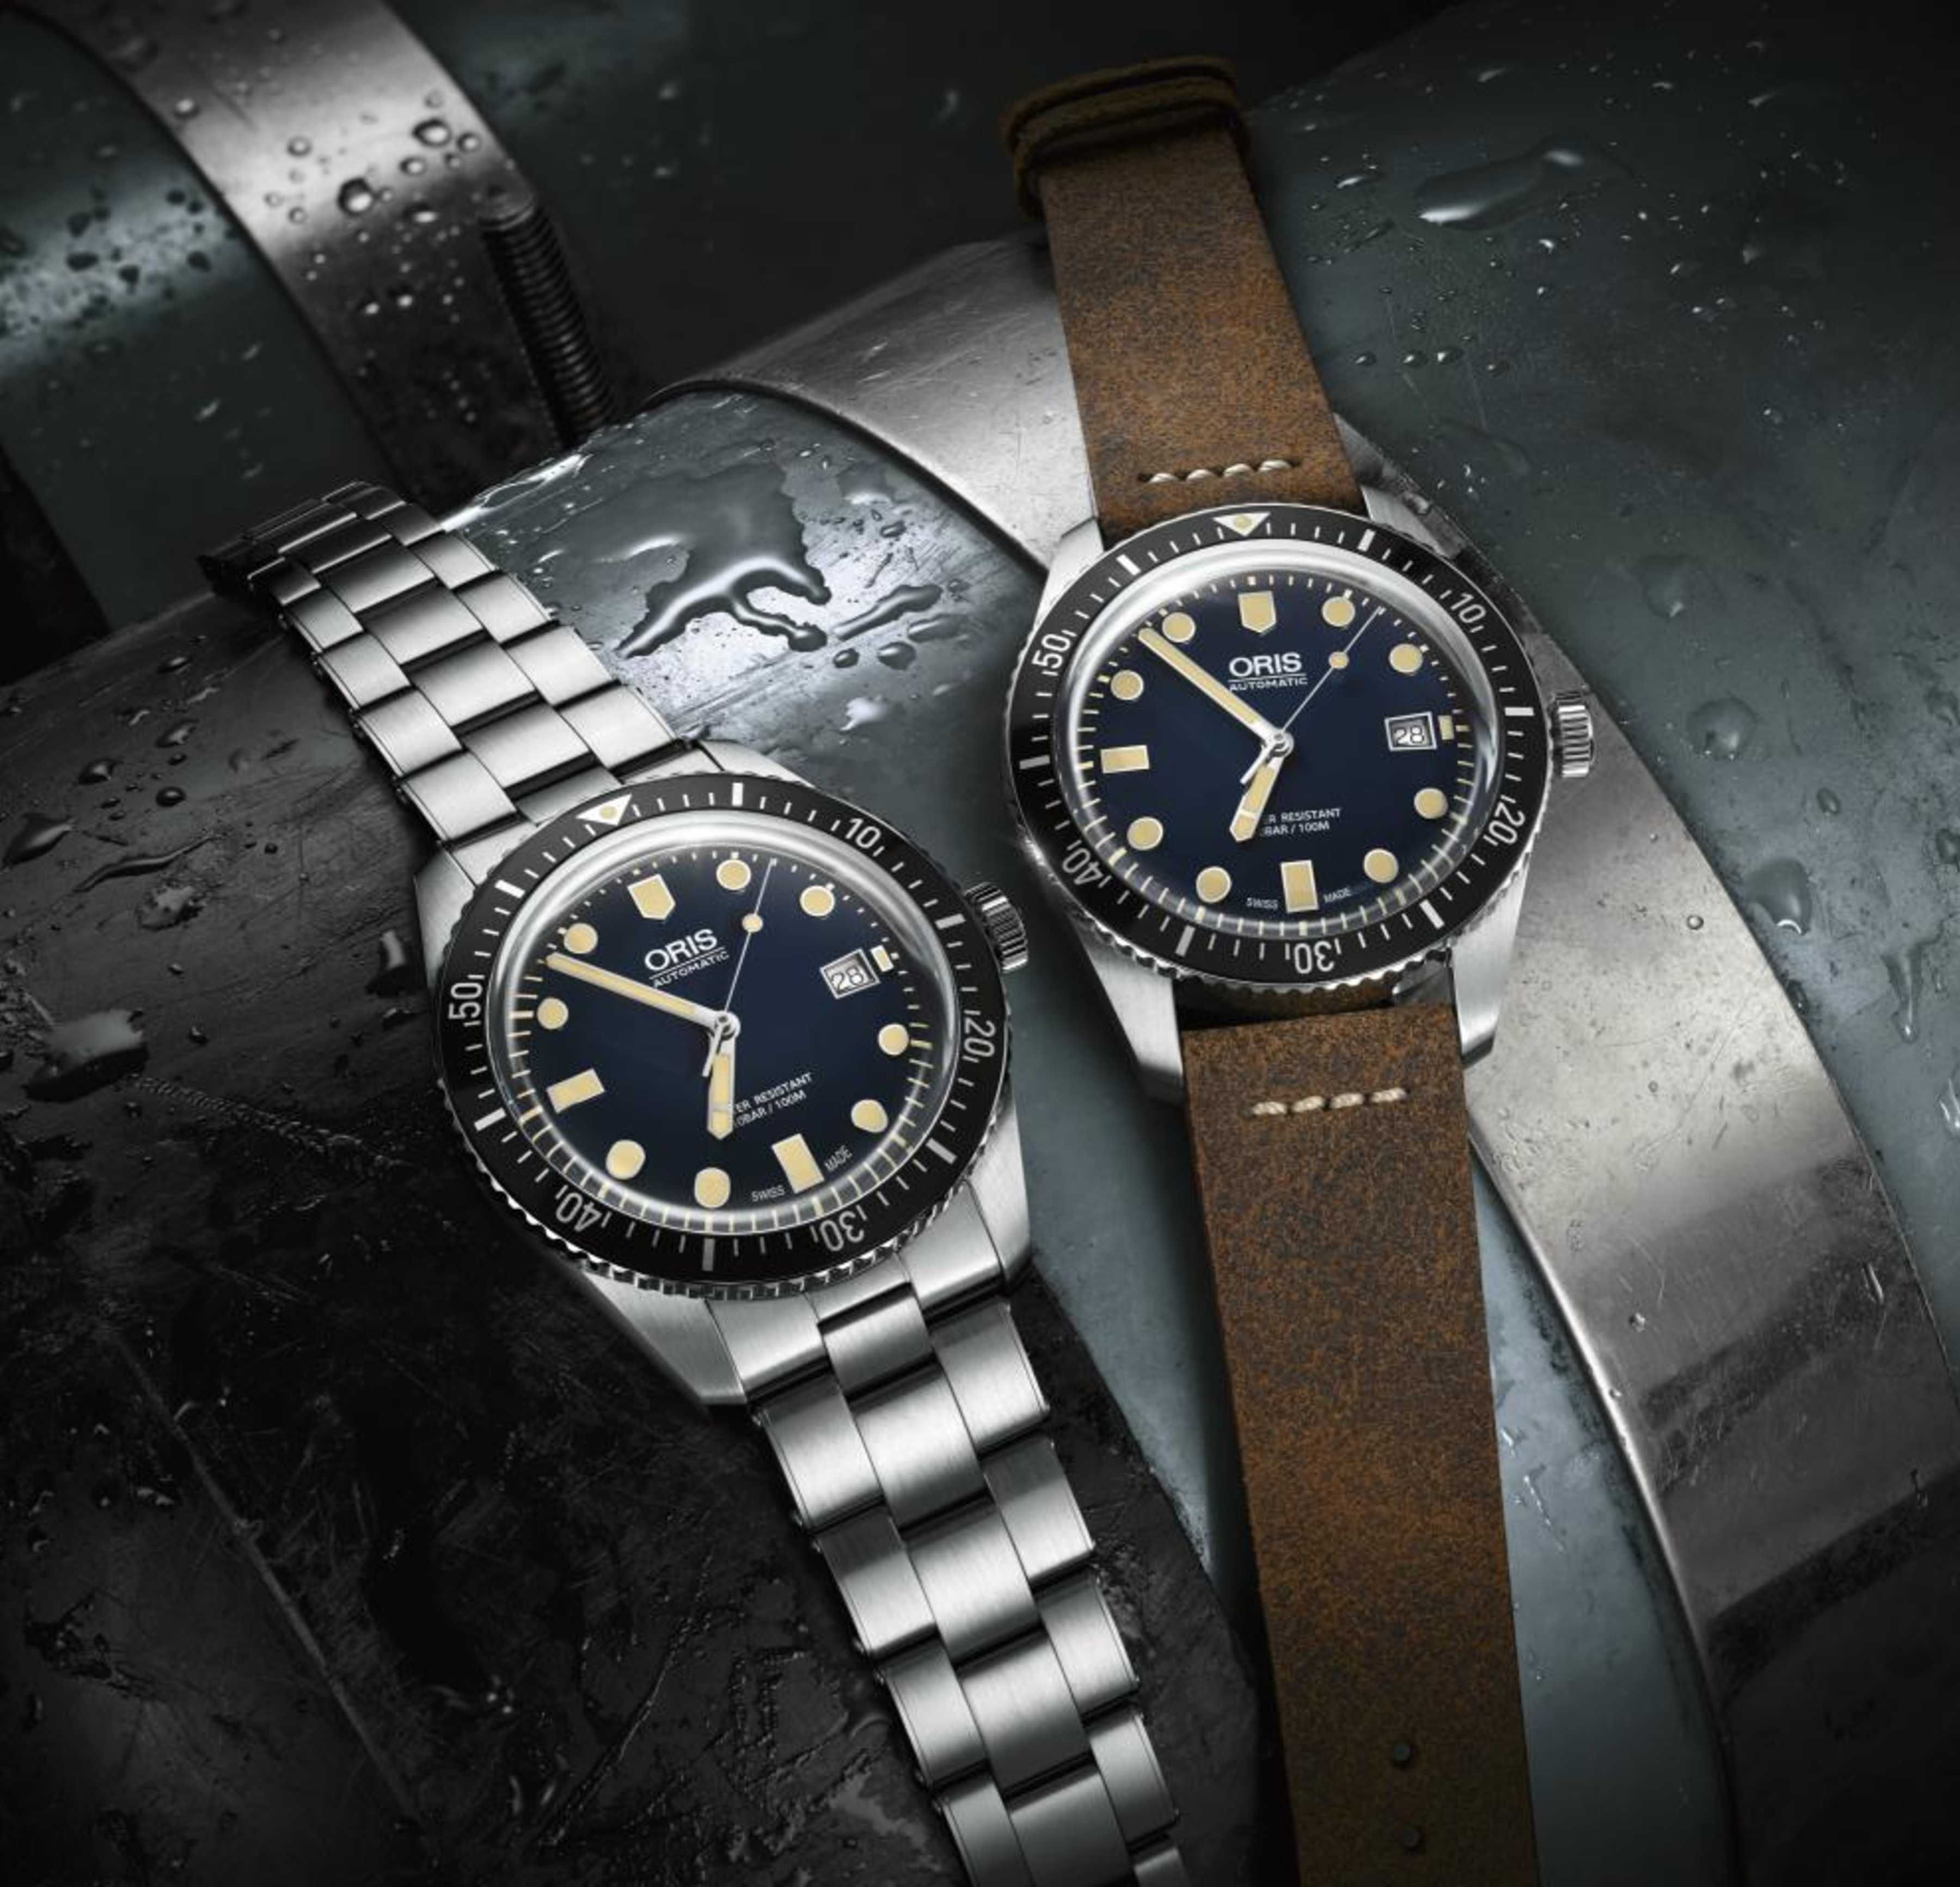 2f97905fd3e Oris goes back 50 years to reintroduce the Divers Sixty-Five